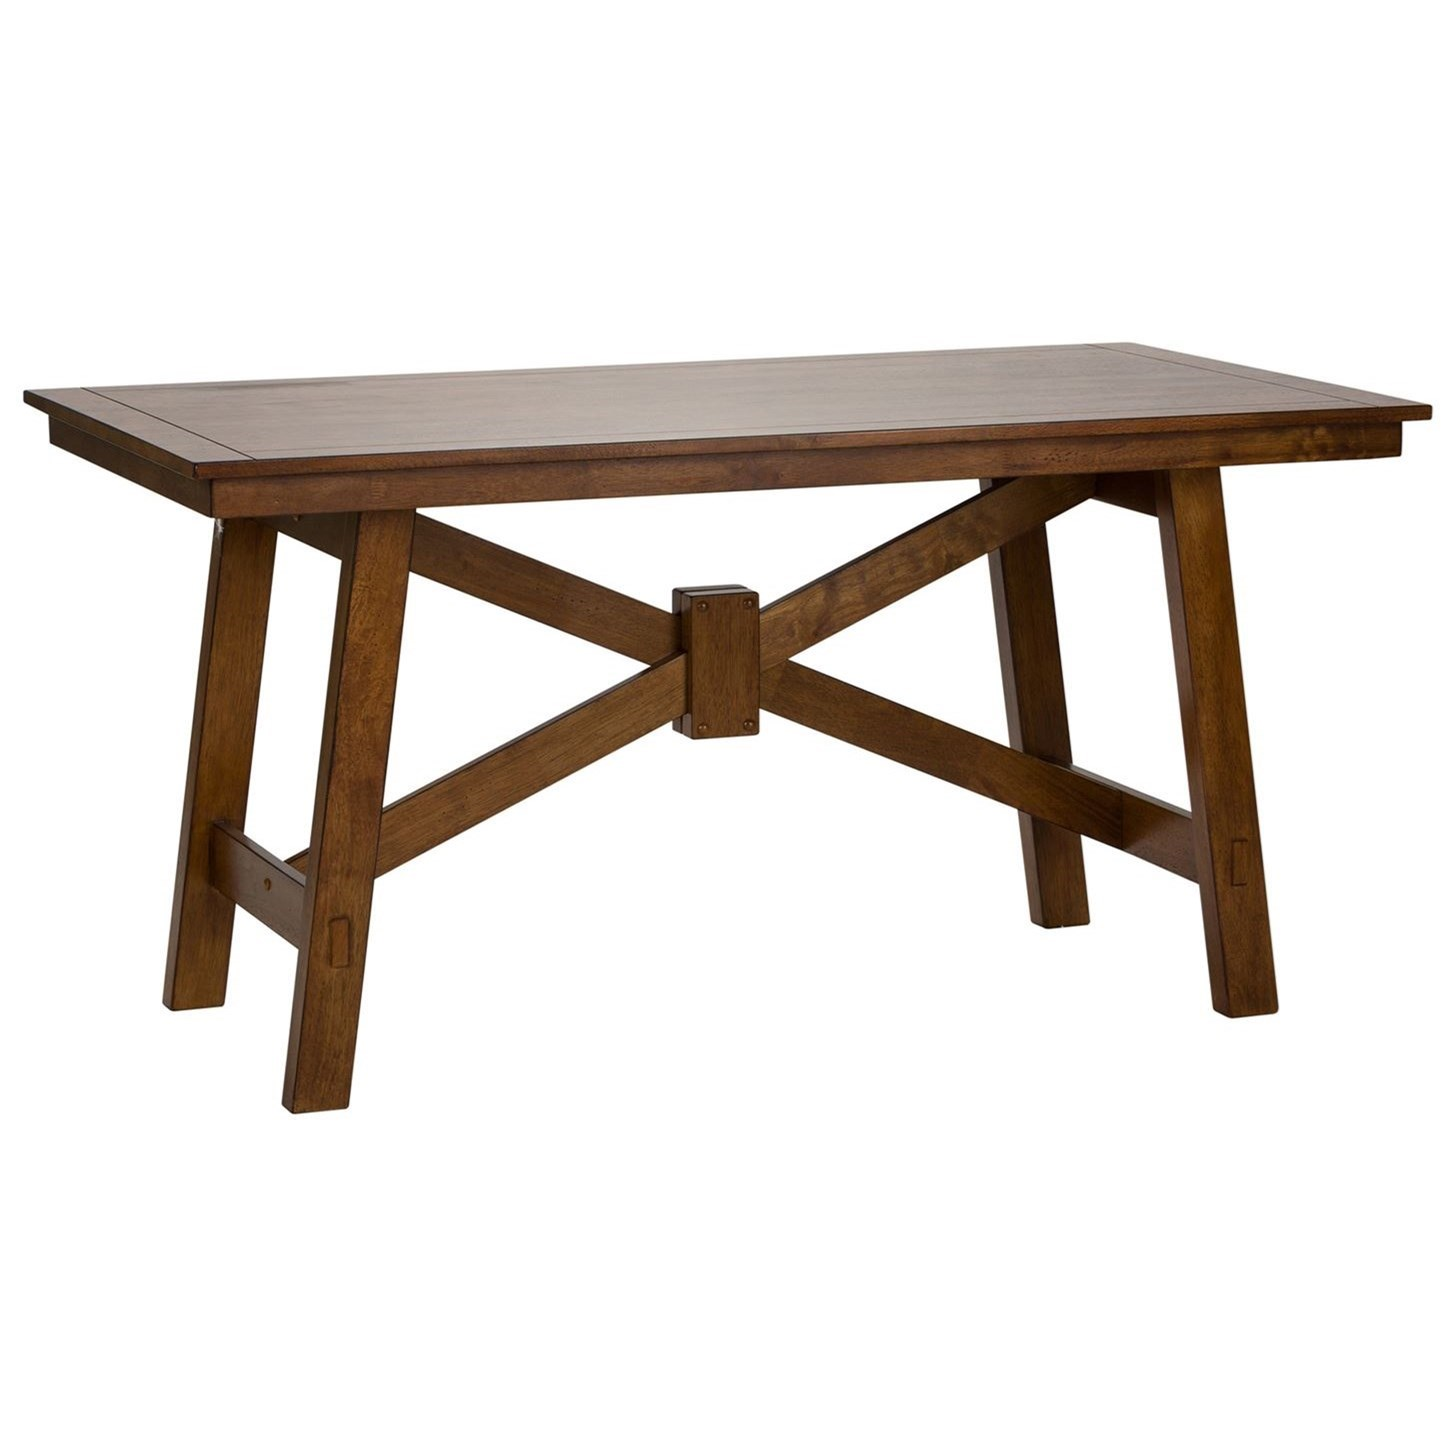 Creations II Rectangular Trestle Table by Liberty Furniture at Steger's Furniture